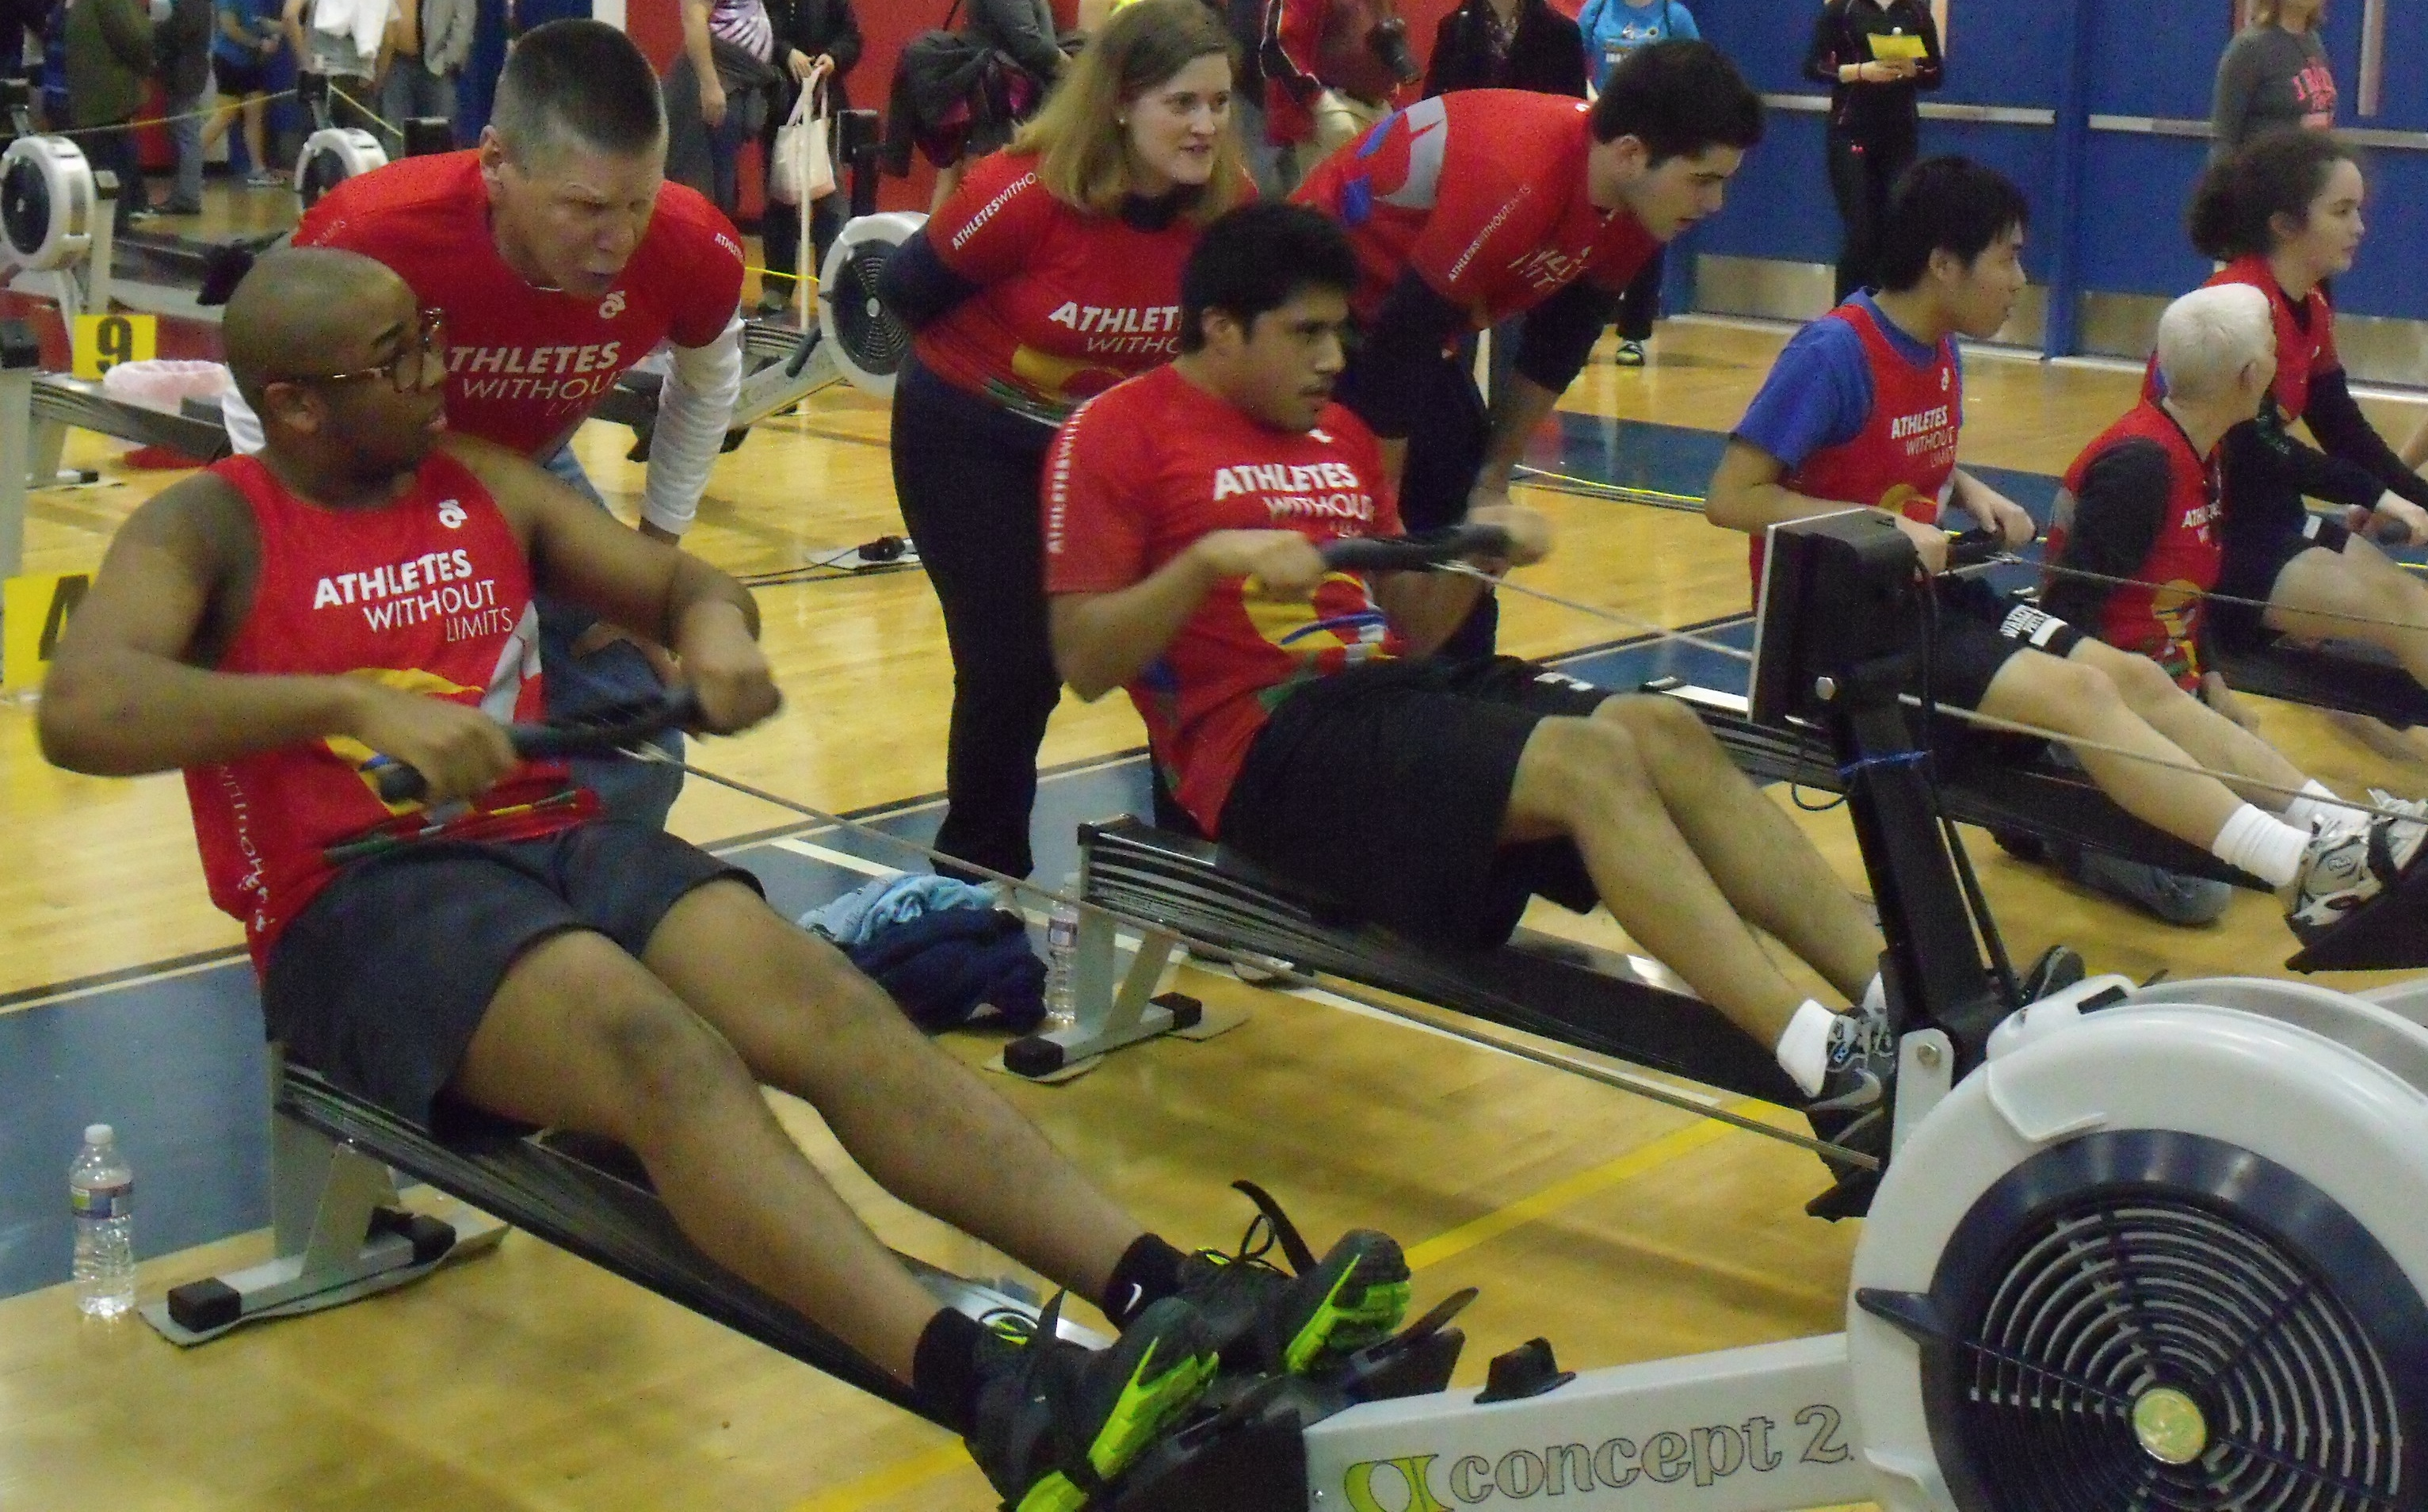 2018 Erg Sprints World Indoor Rowing Championships